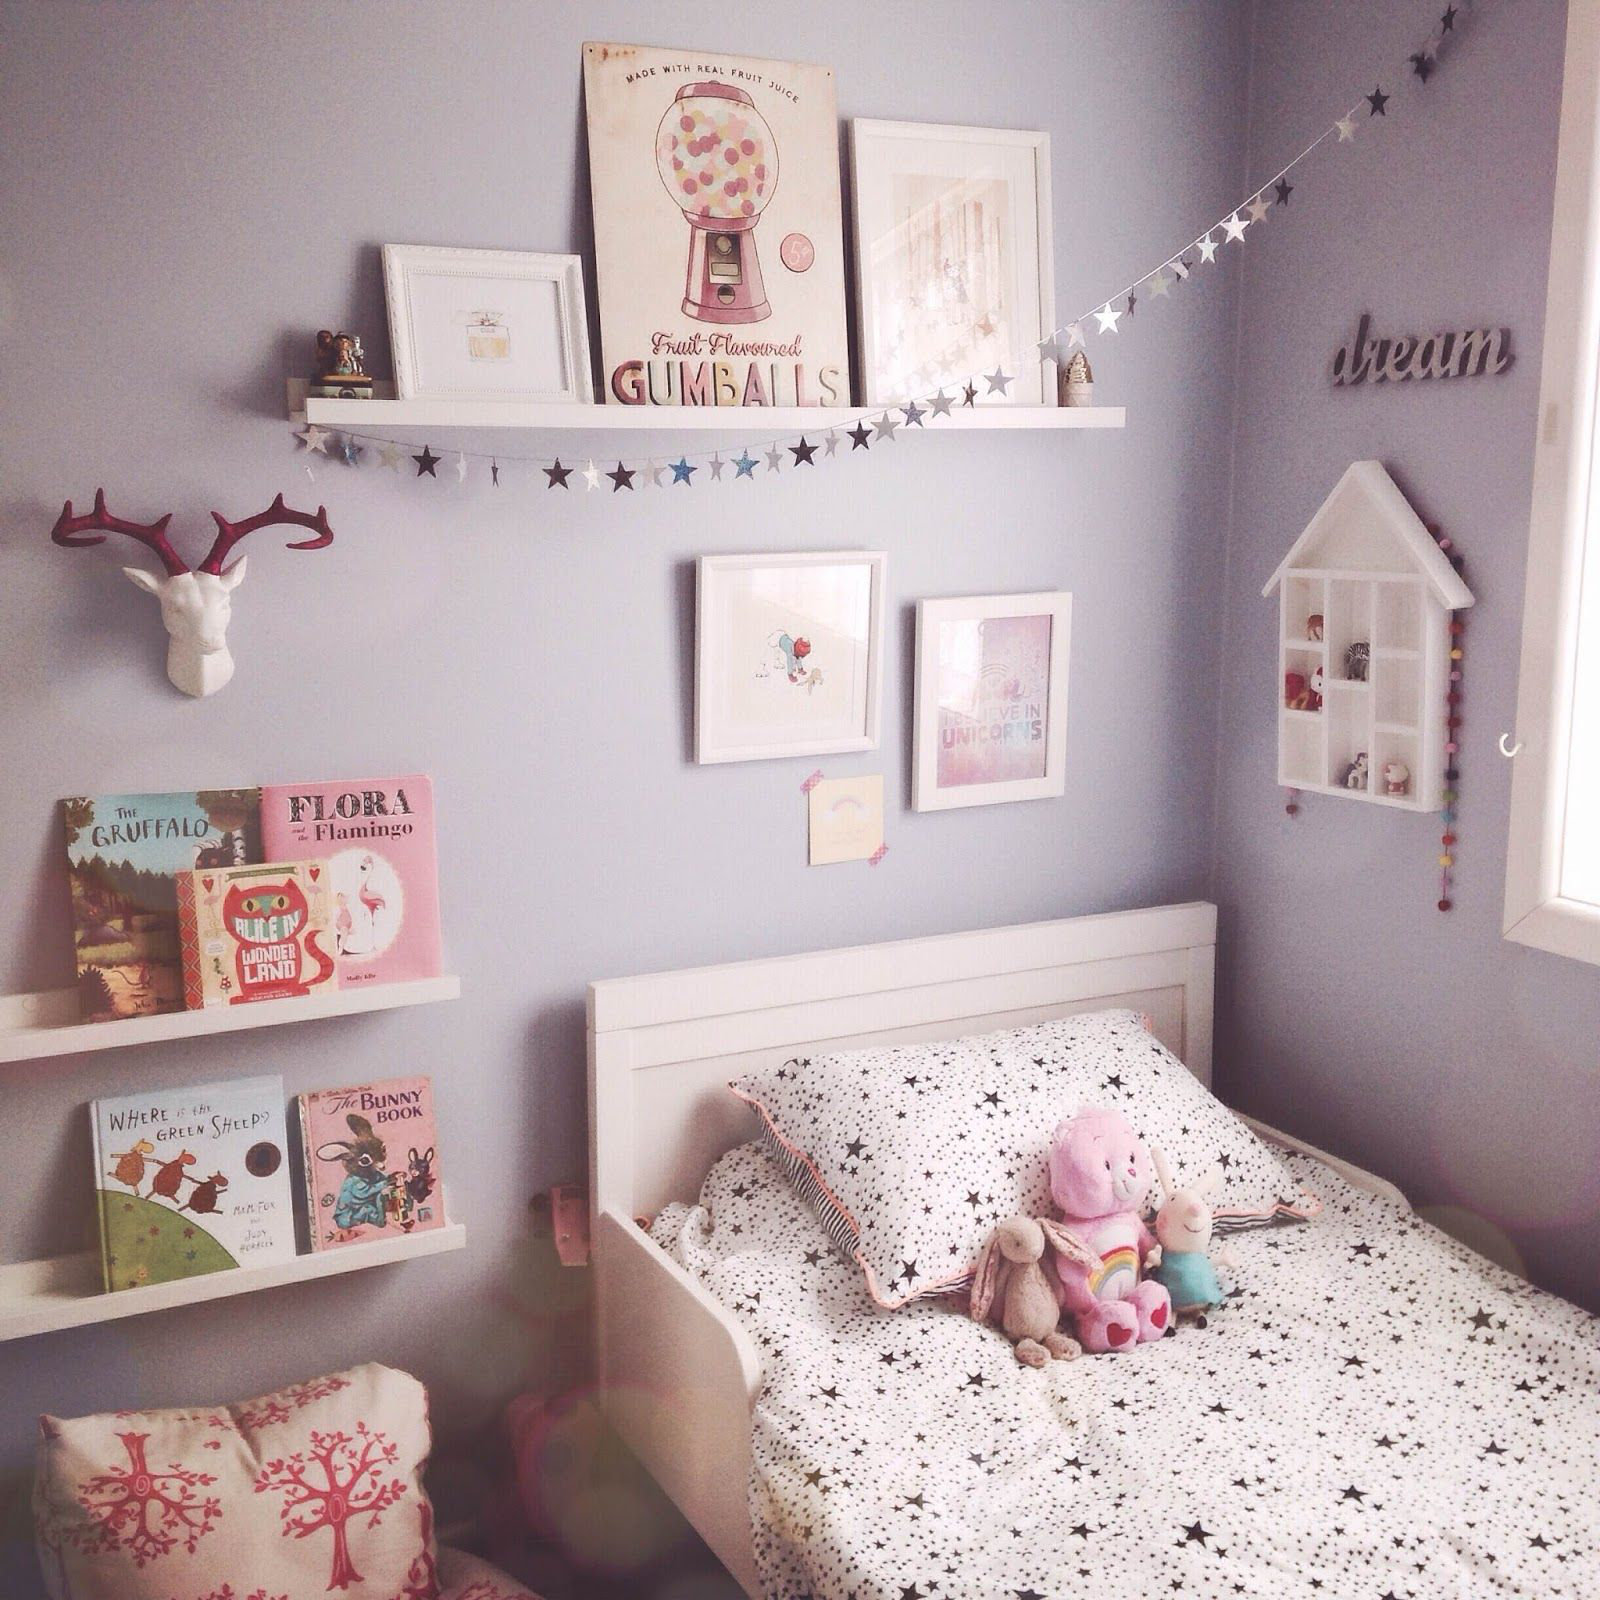 Belle And Boo Room Tour Chloes Room (Bedroom Colour Schemes